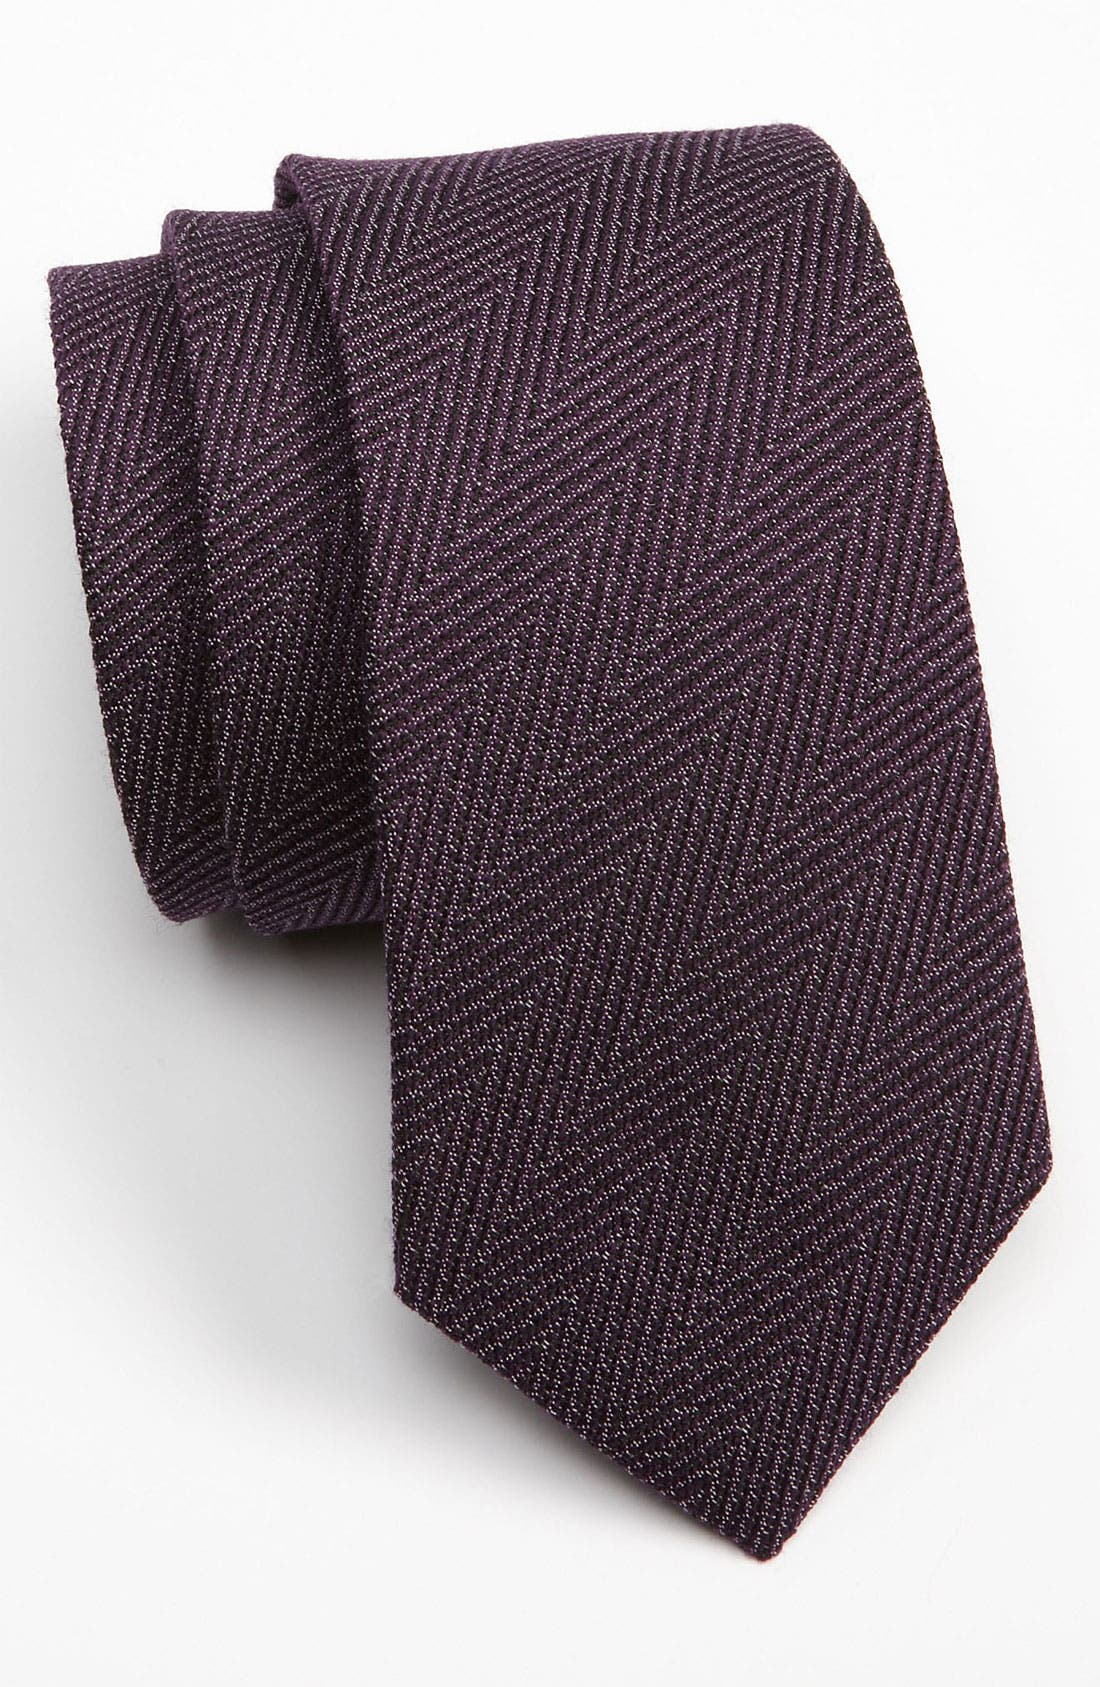 Alternate Image 1 Selected - Theory Woven Tie